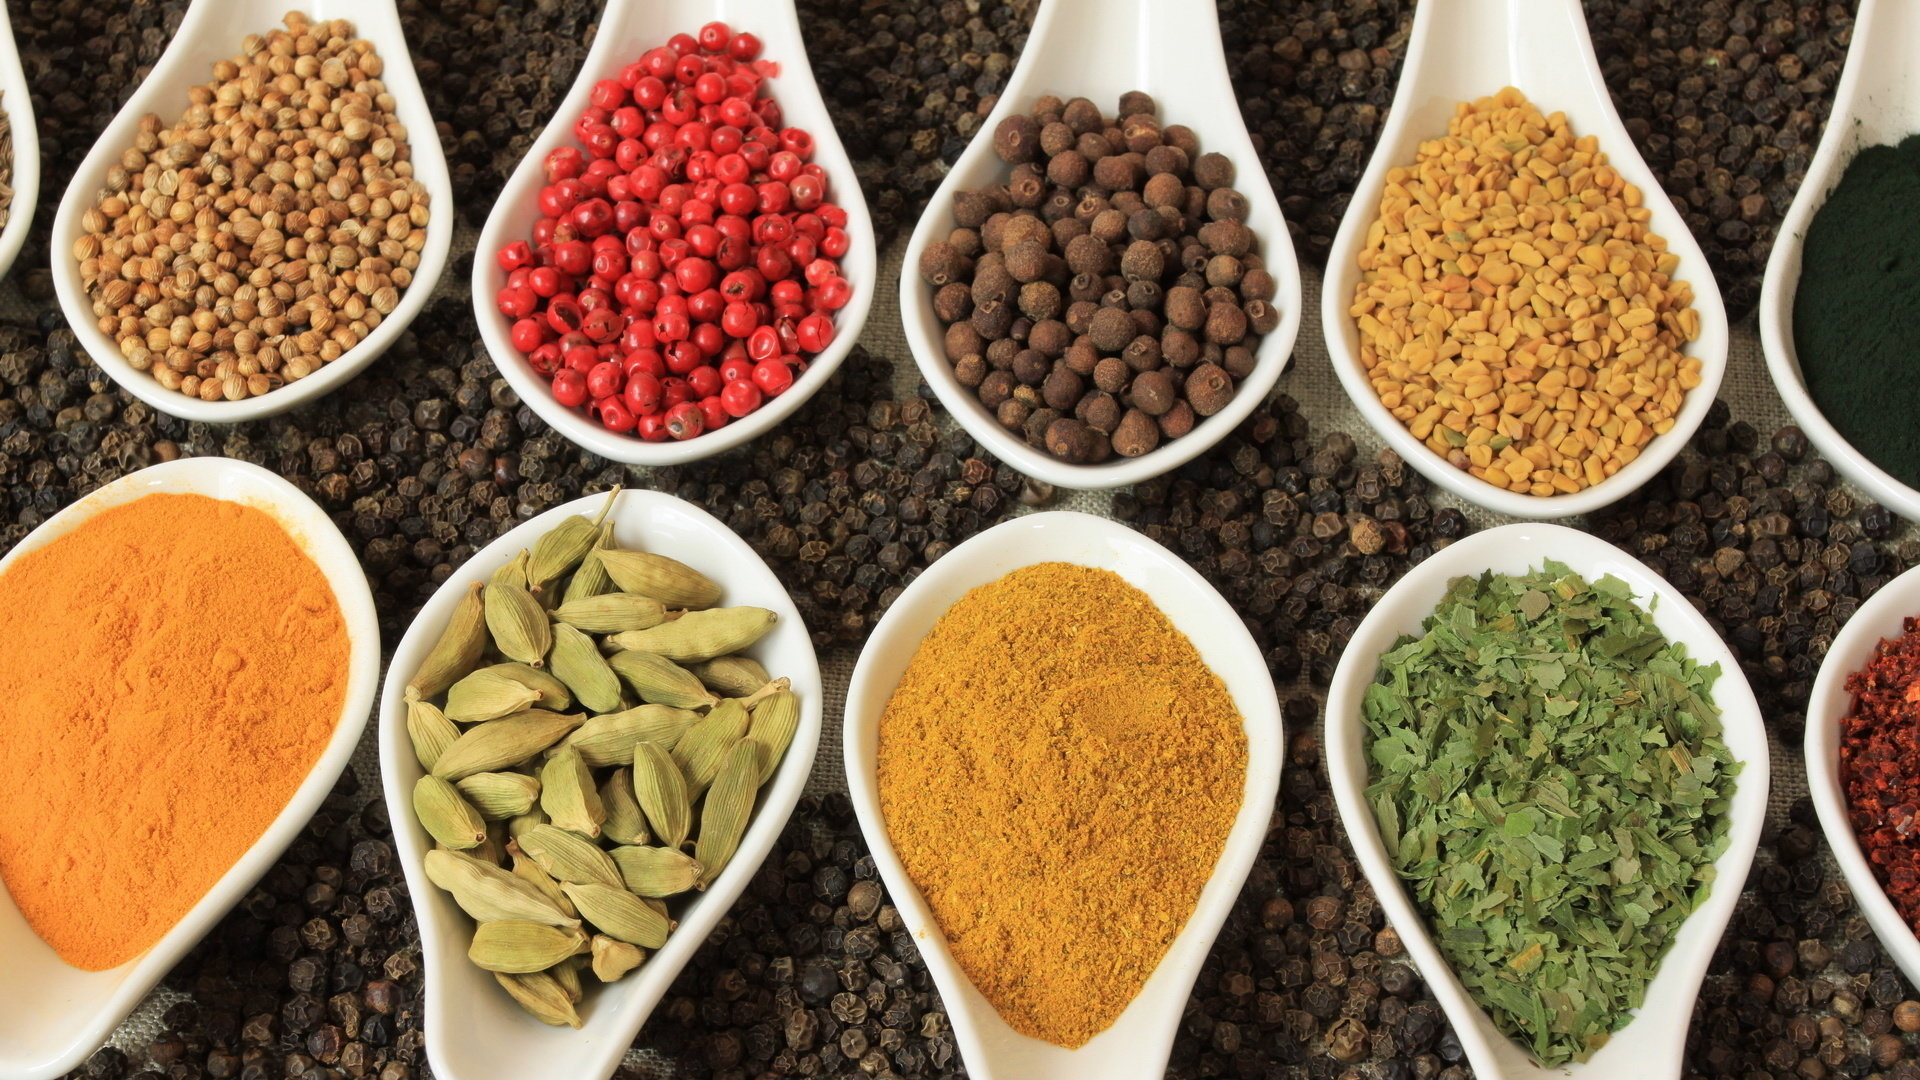 Free Herbs And Spices high quality wallpaper ID:410407 for full hd 1080p desktop